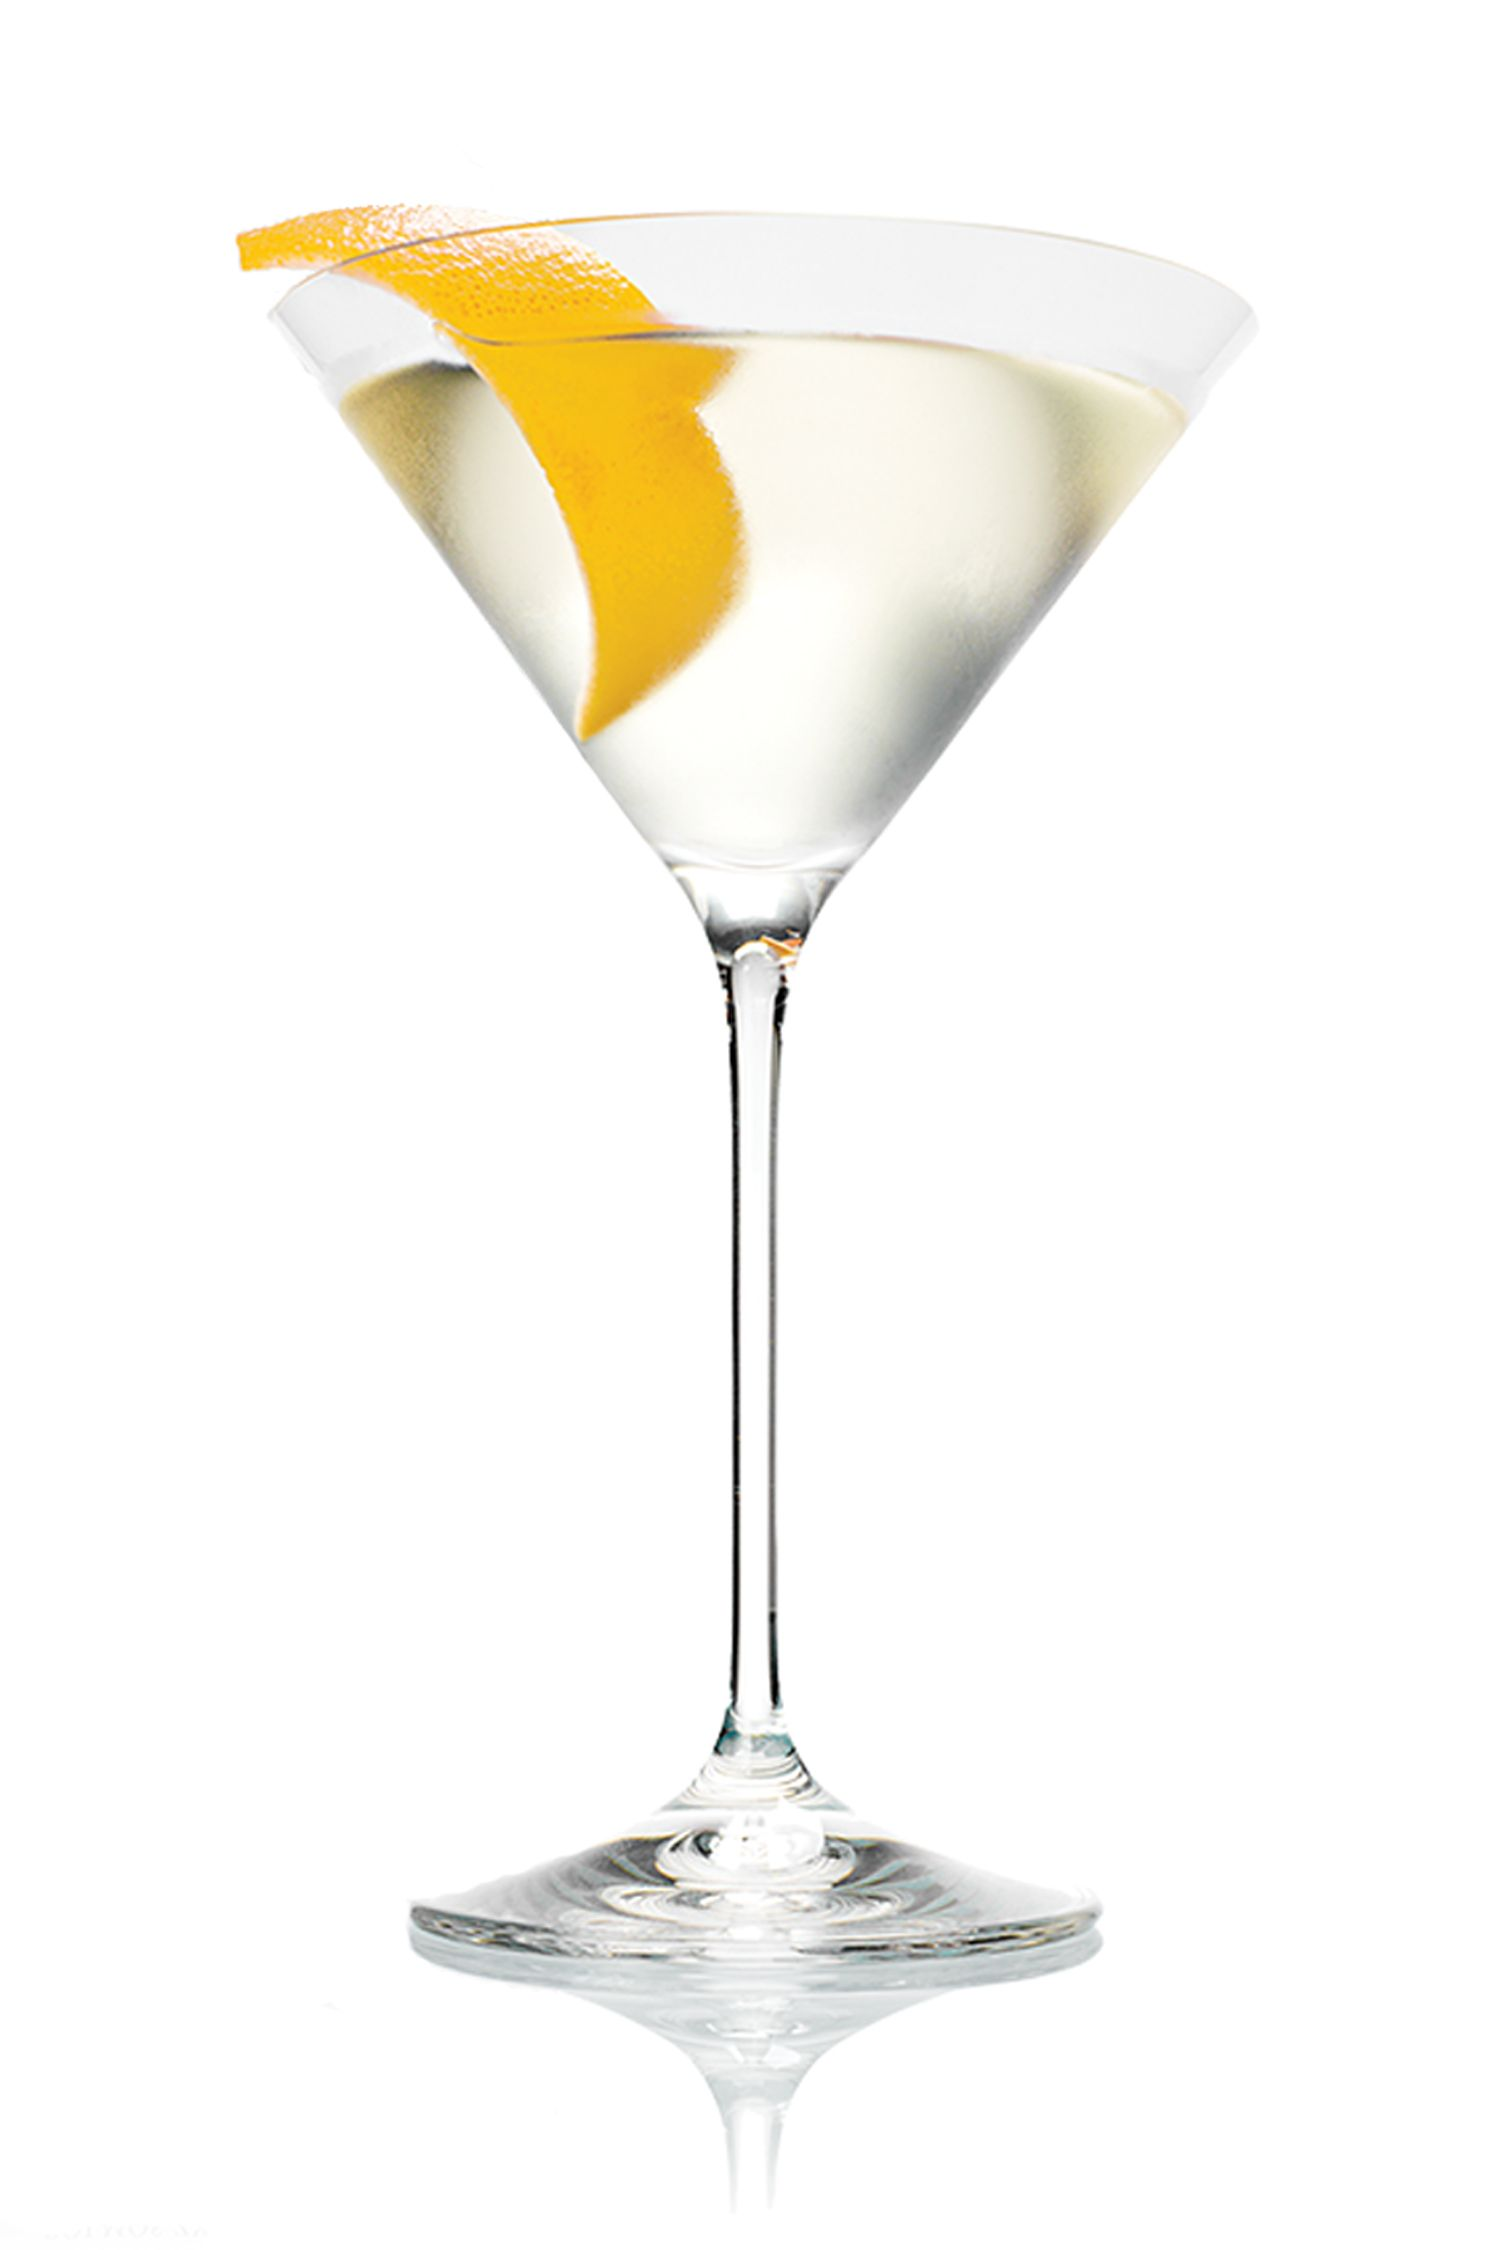 """<p><strong>The Drink</strong><br></p><p><span class=""""redactor-invisible-space"""">Martinis are eternally chic. (Have you ever known anyone who looks anything but cool while drinking James Bond's iconic cocktail?) No need to sully their purity with olive juice–simple is delicious!</span></p><p><em></em><strong>The Recipe</strong></p><p><em></em> 2 oz Belvedere Vodka </p><p>1/3 oz Dry Vermouth</p><p>Serve this classic 'tini shaken, not stirred&#x3B; garnish with a lemon twist. </p>"""